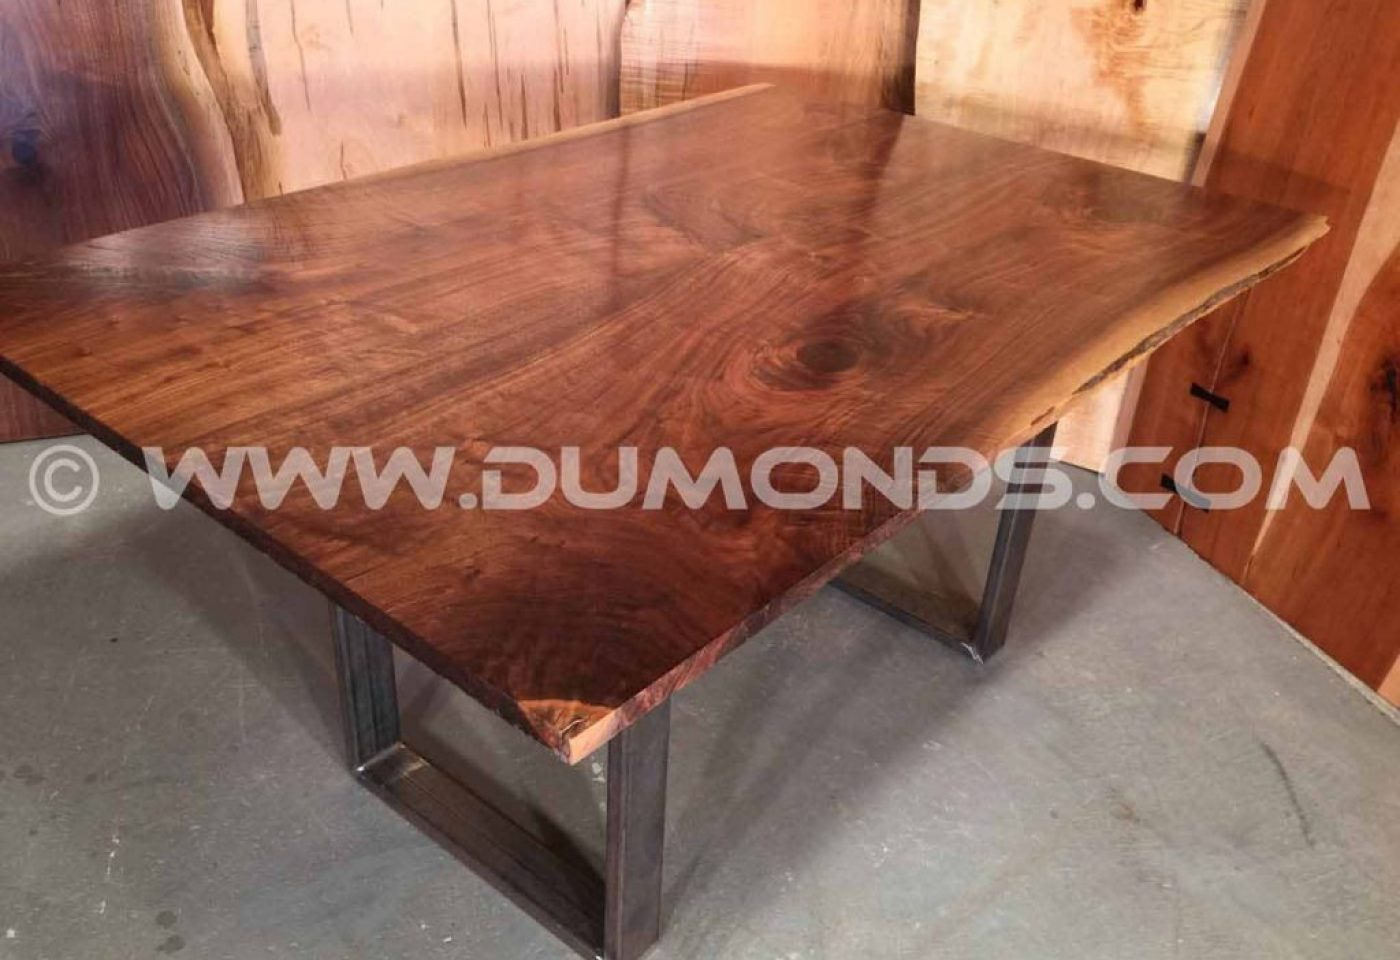 CURLY WALNUT FROM MARYLAND- LIVE EDGE SLAB TABLE